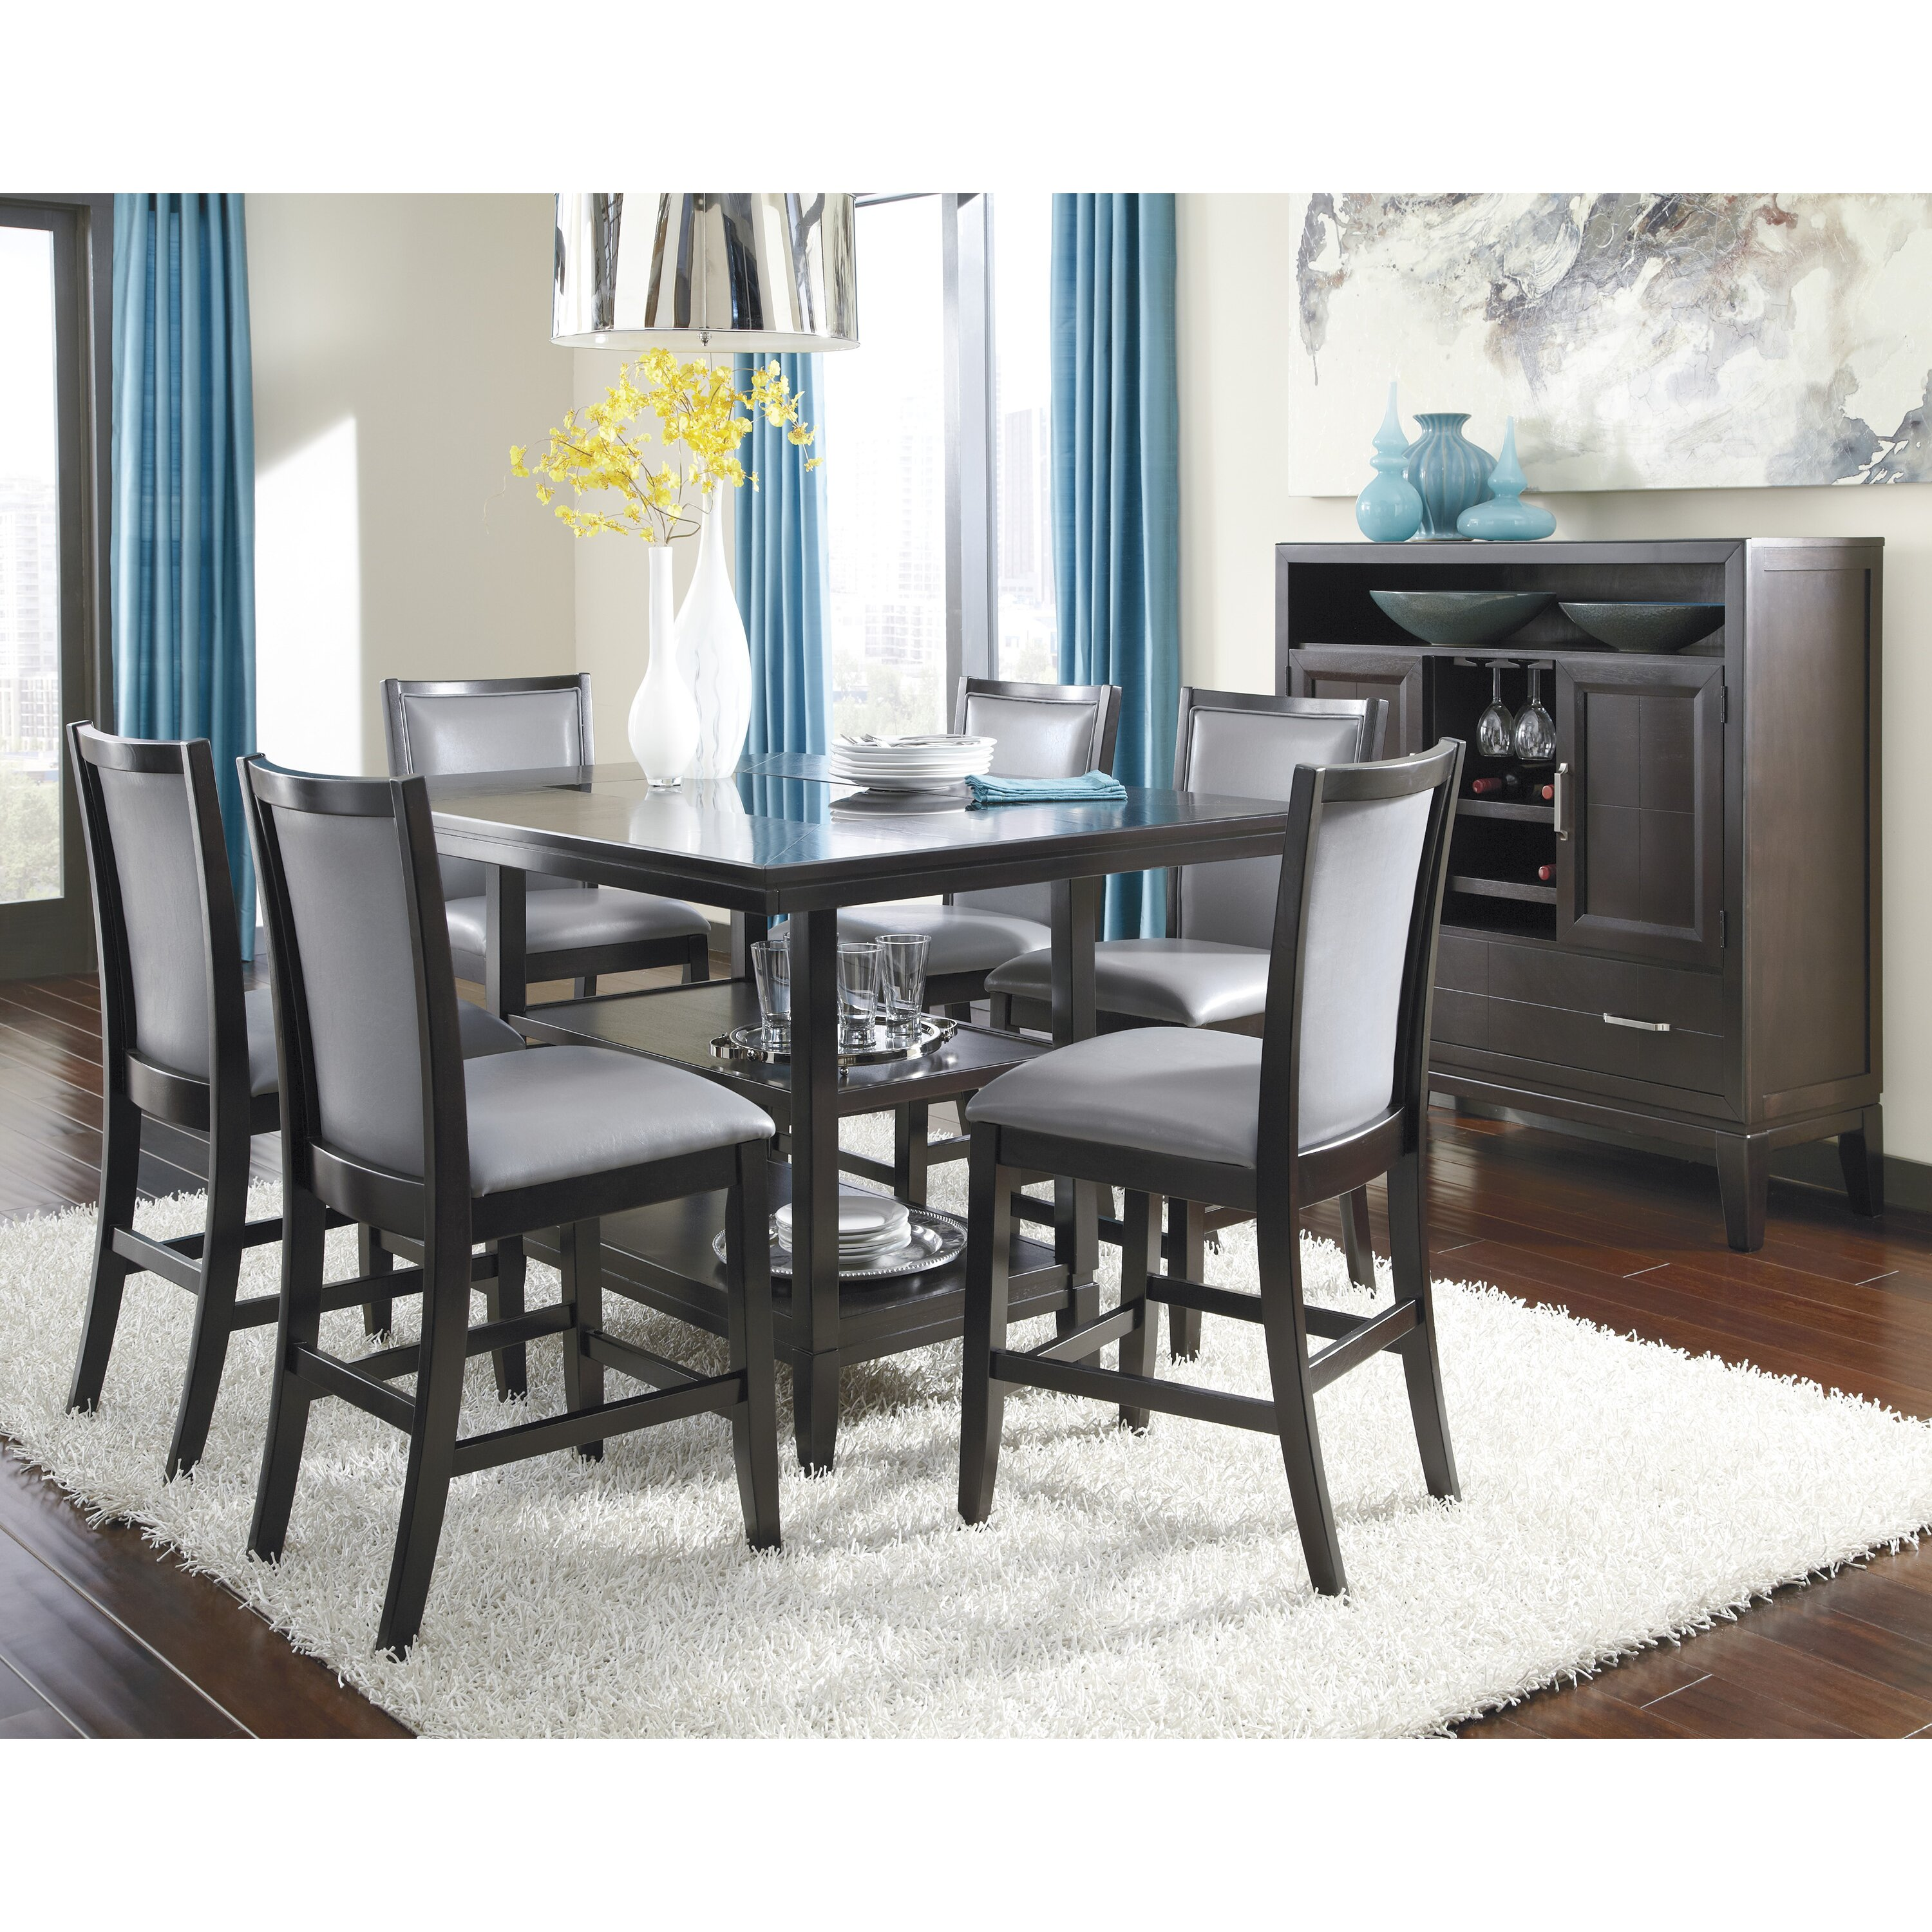 Signature Design by Ashley Trishelle Counter Height Dining  : Trishelle Counter Height Dining Table D550 32 from www.wayfair.com size 3000 x 3000 jpeg 1719kB